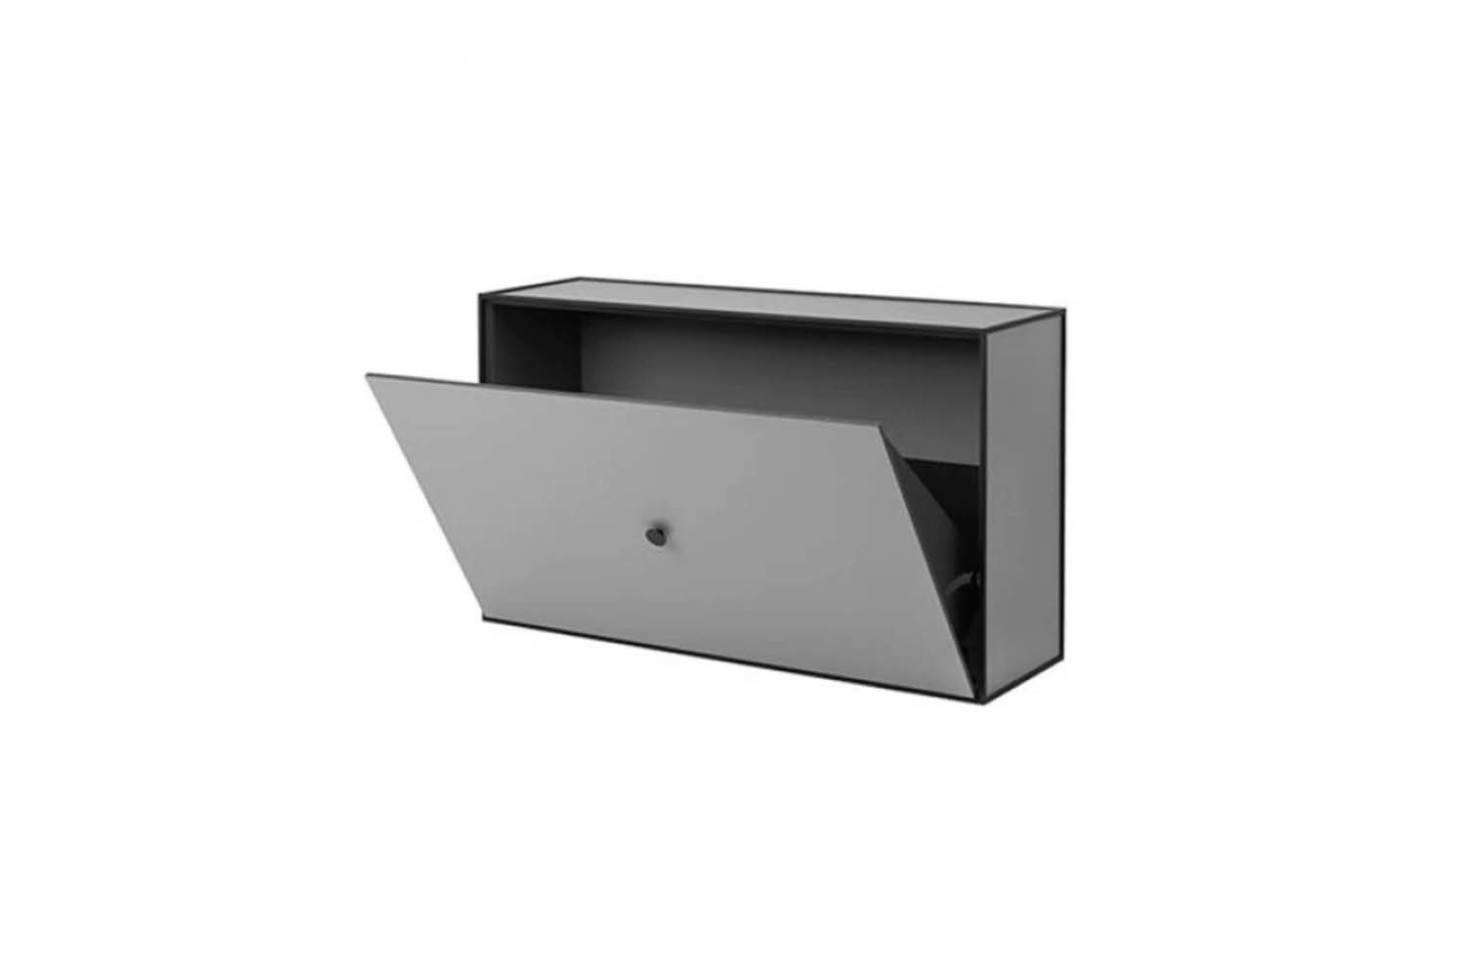 The By Lassen Frame Shoe Cabinet comes is a wall-mounted design specifically for shoes and can be used alone or in multiples. Available in Dark Gray (shown), Light Gray, White, Dark Blue, and Black-Stained Ash starting at $7 each from Horne.